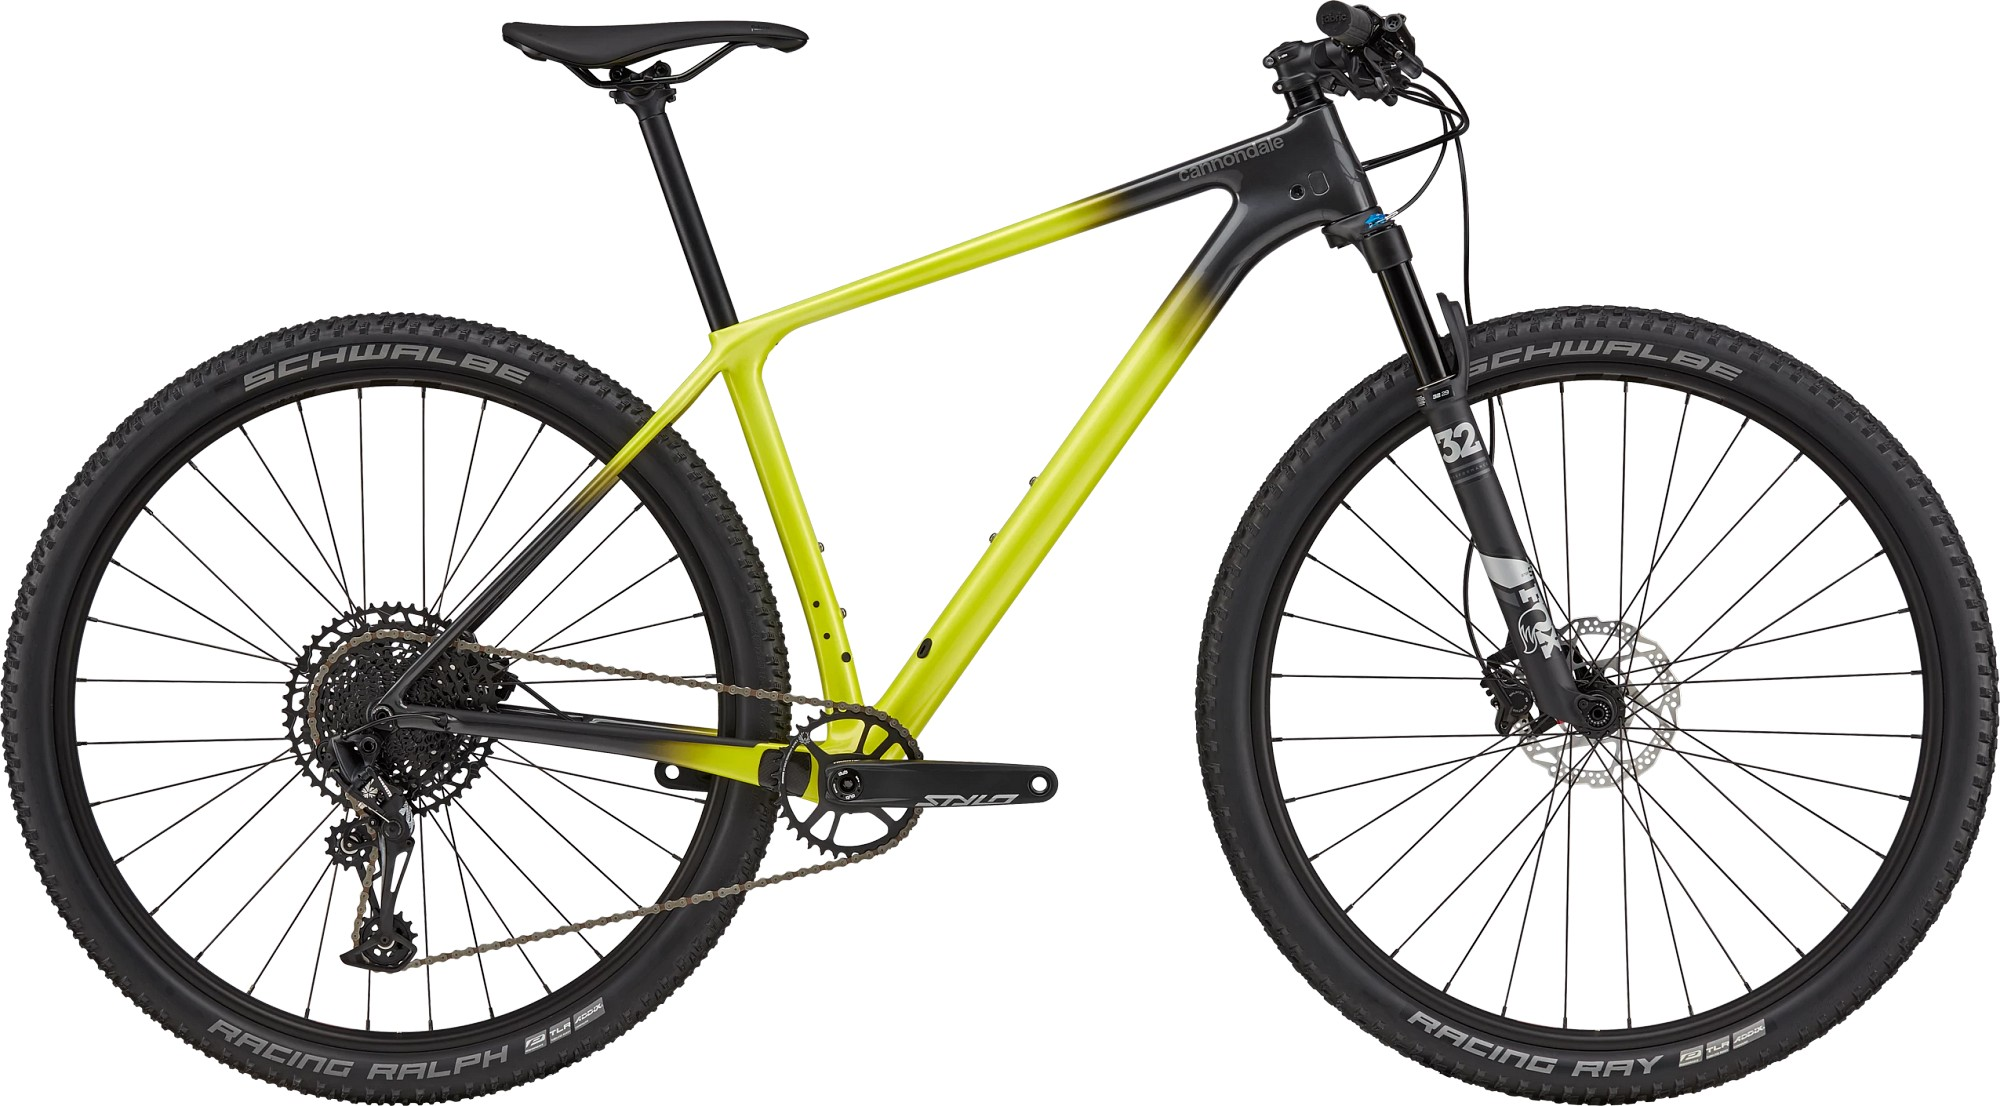 Bicicleta de munte hardtail Cannondale F-SI Carbon 5 Verde fosforescent 2021 imagine